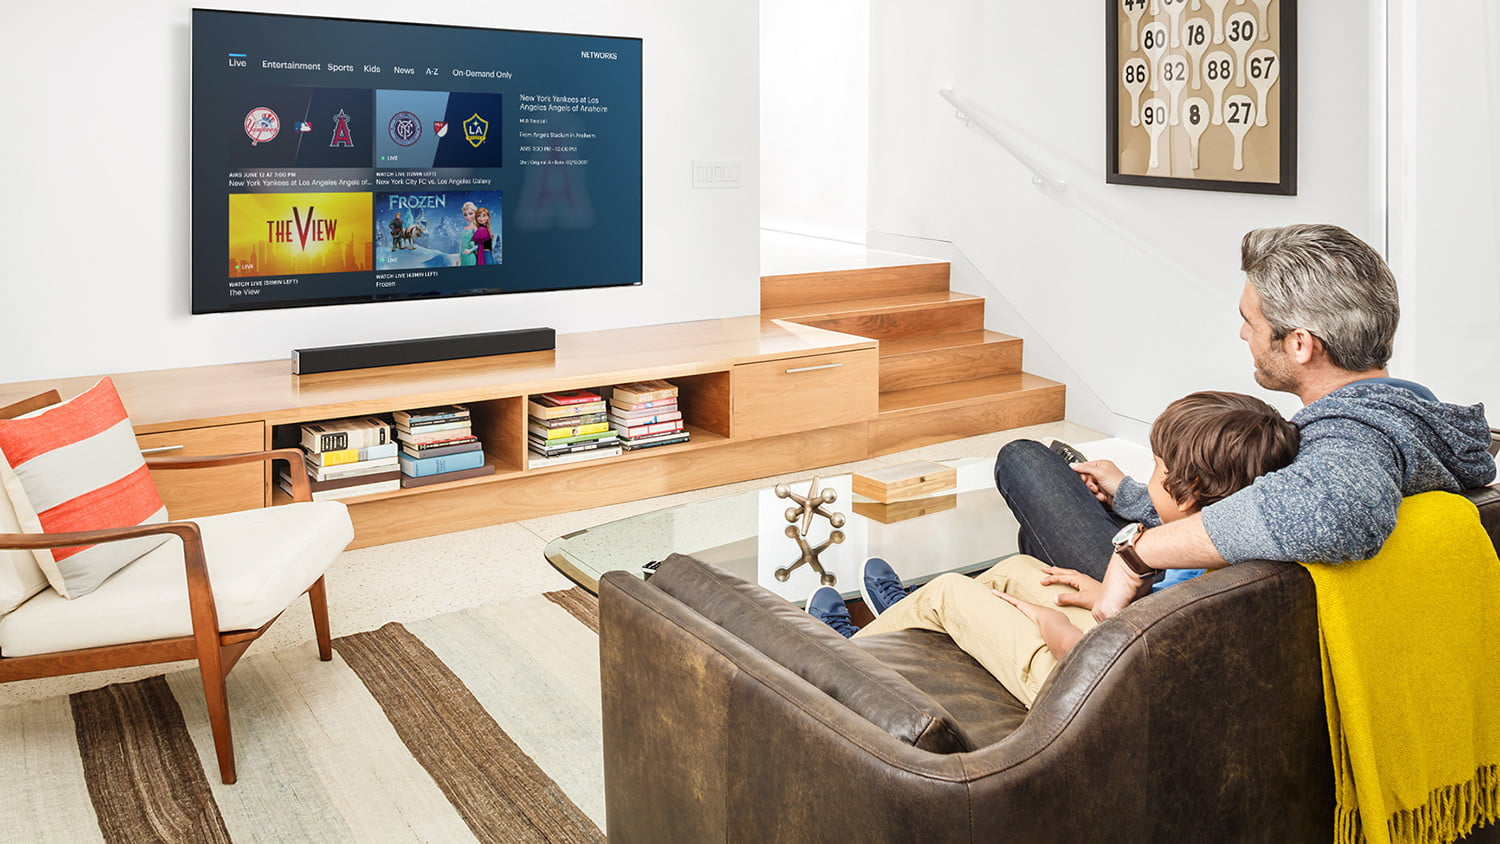 DirecTV Now is the latest live TV streaming service to jack up i